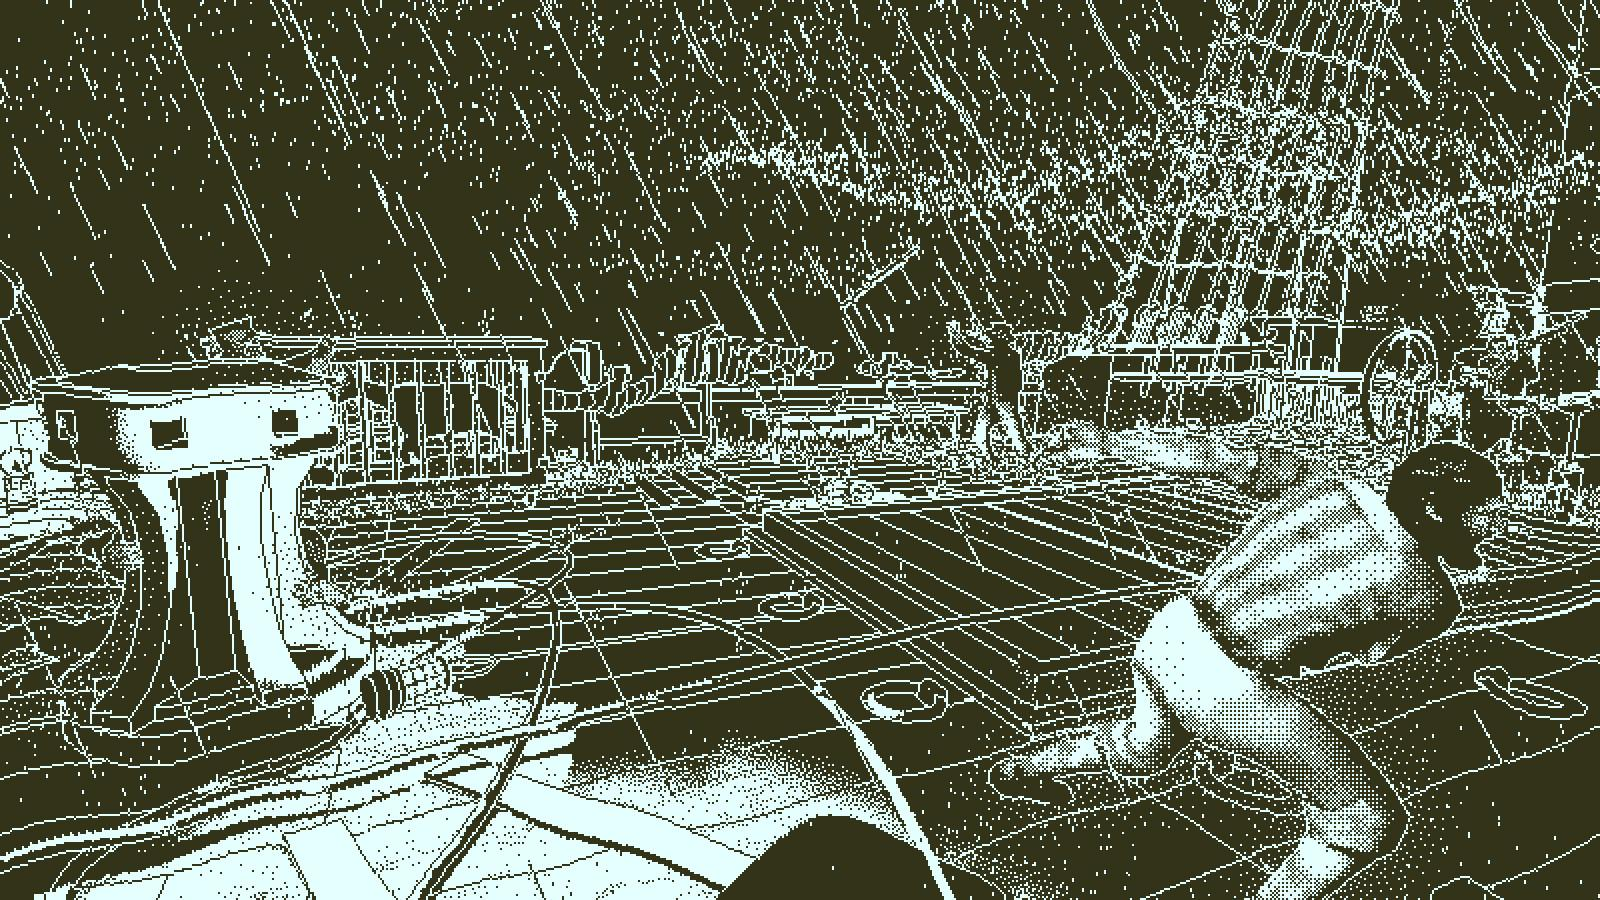 Return of the Obra Dinn - Recensione | Detective in bianco e nero